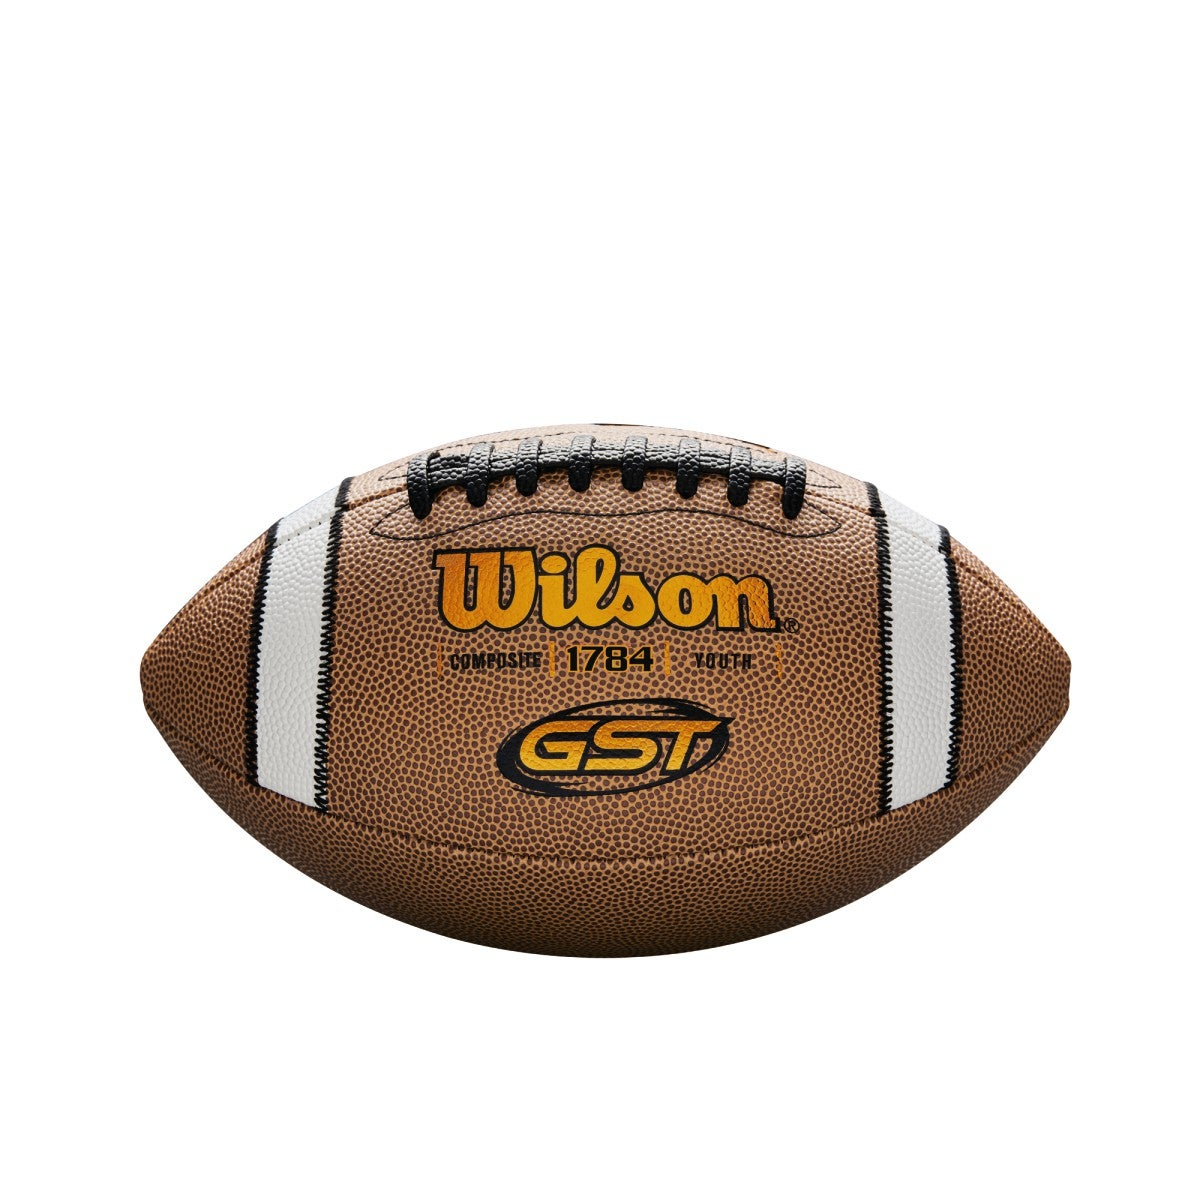 Tdy Gst Composite Football Youth Size Wilson Sporting